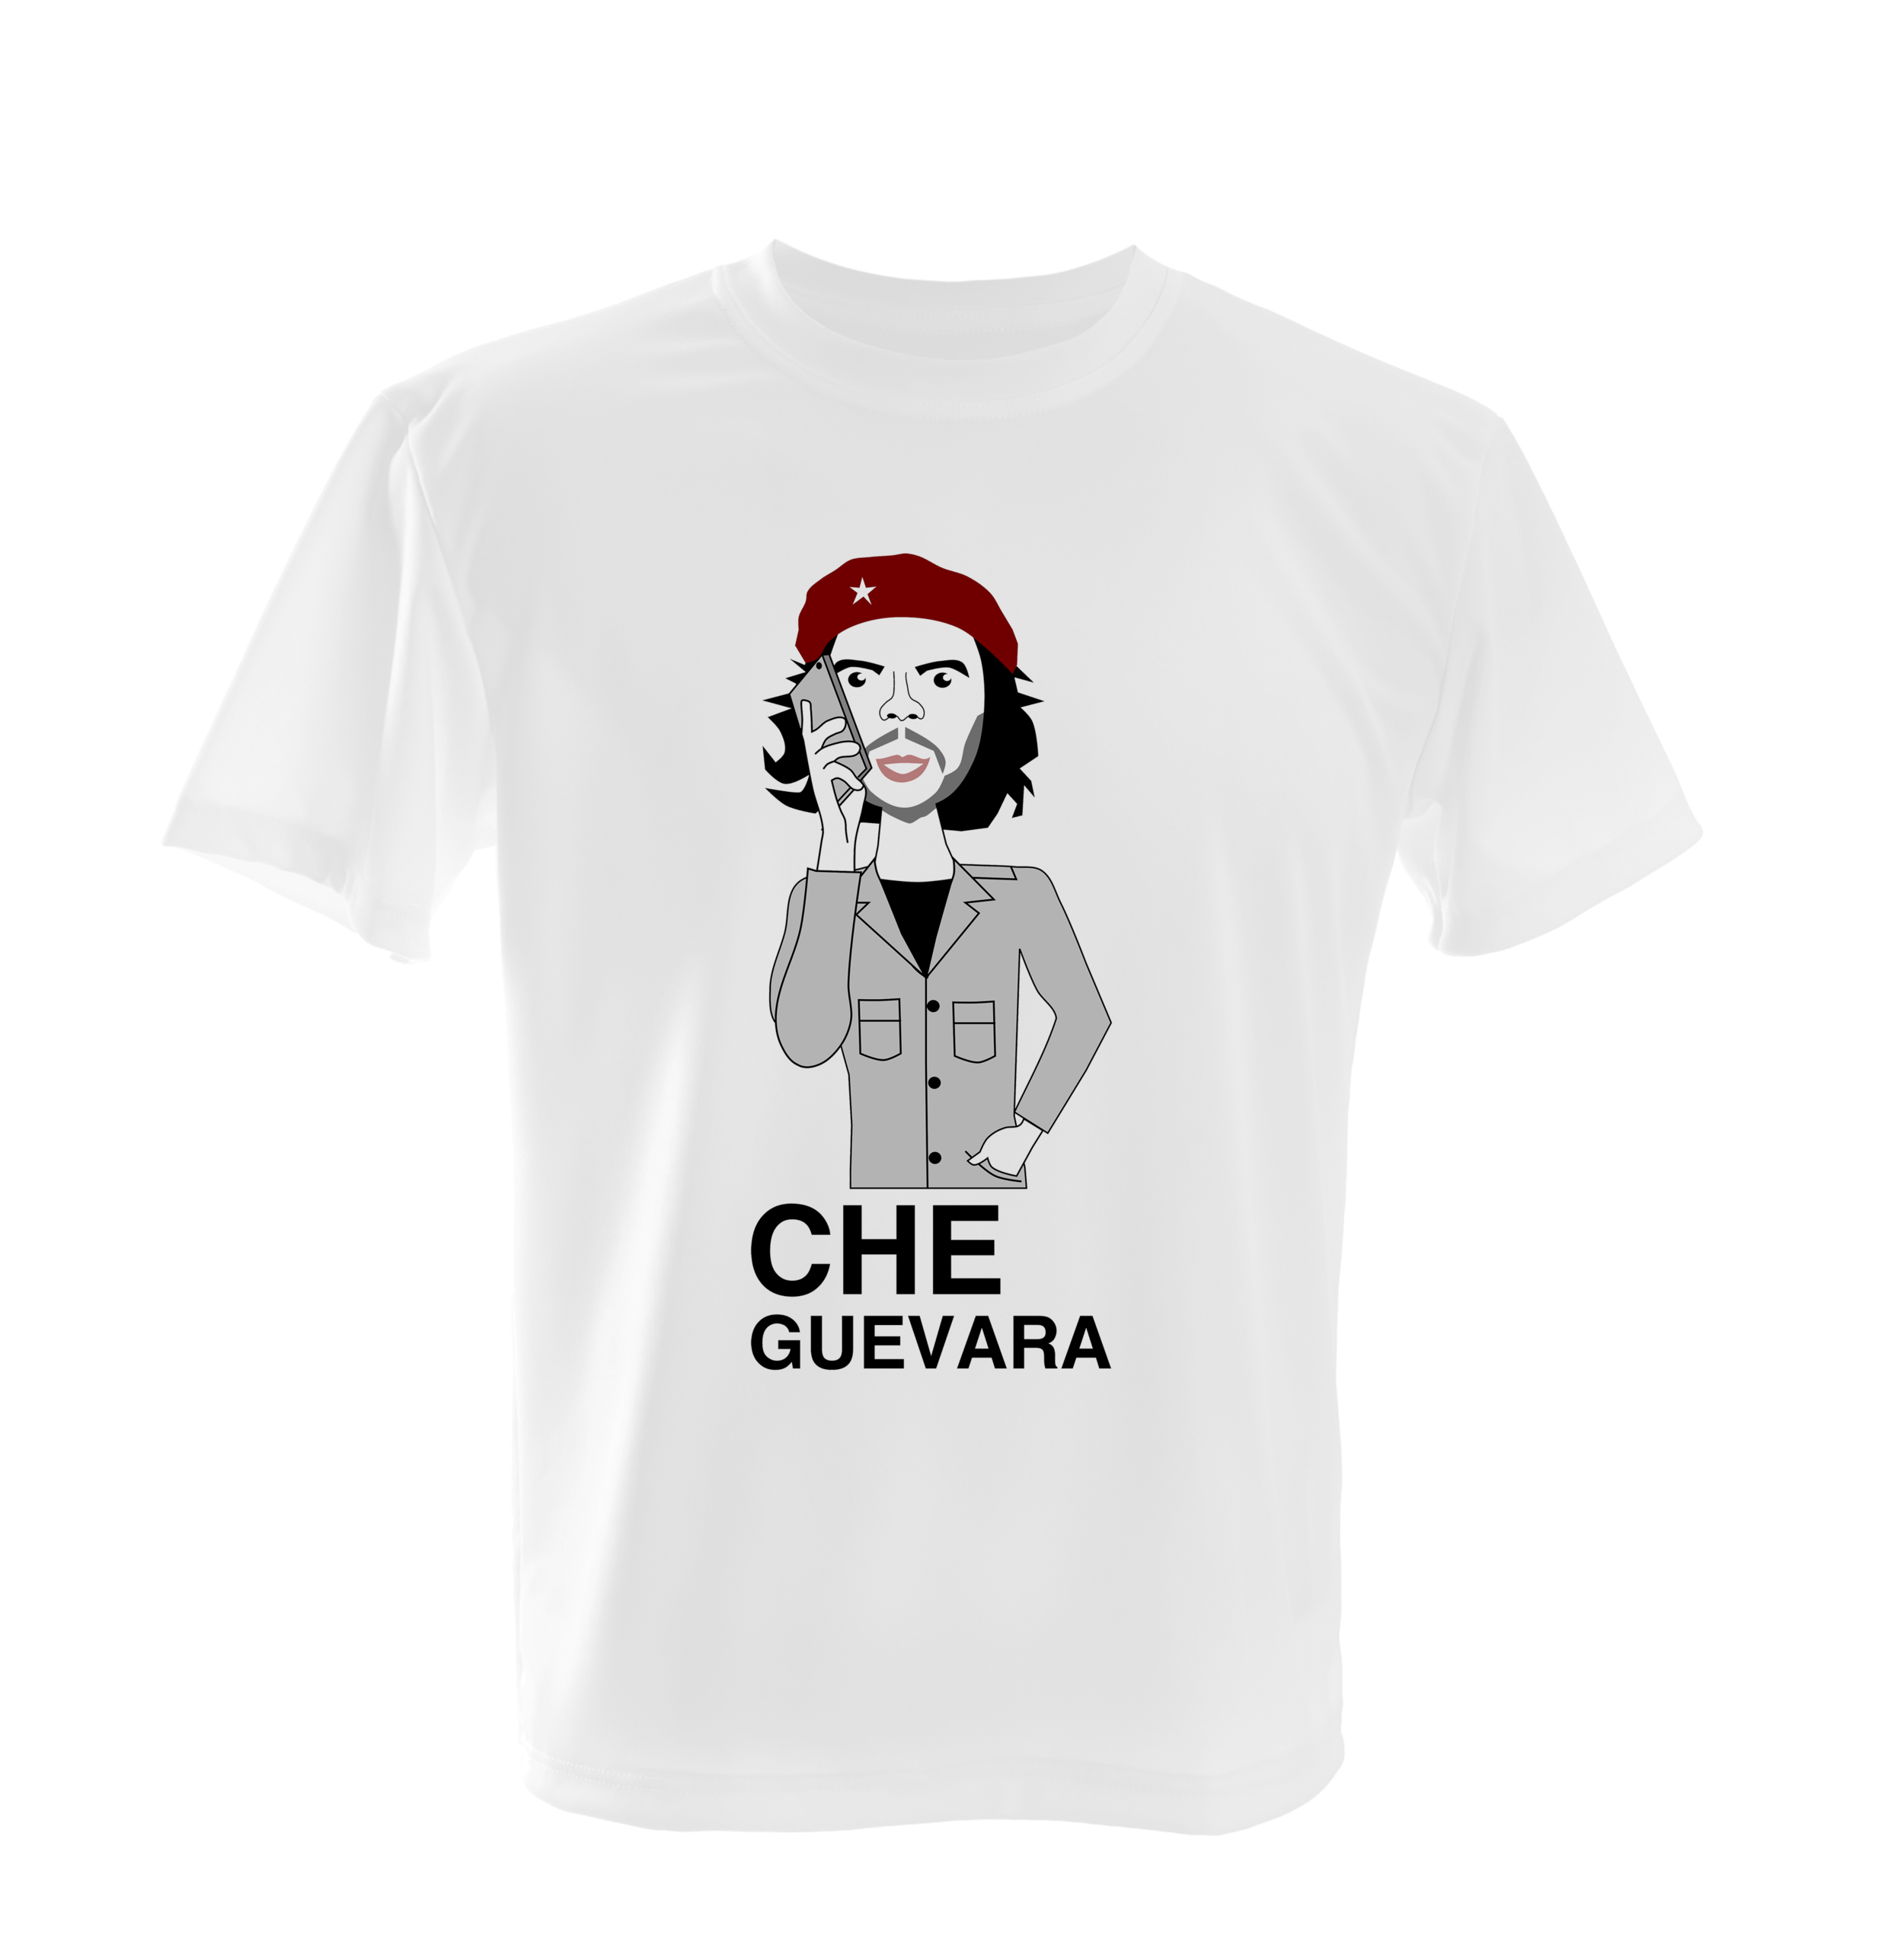 t_shirt_che.png